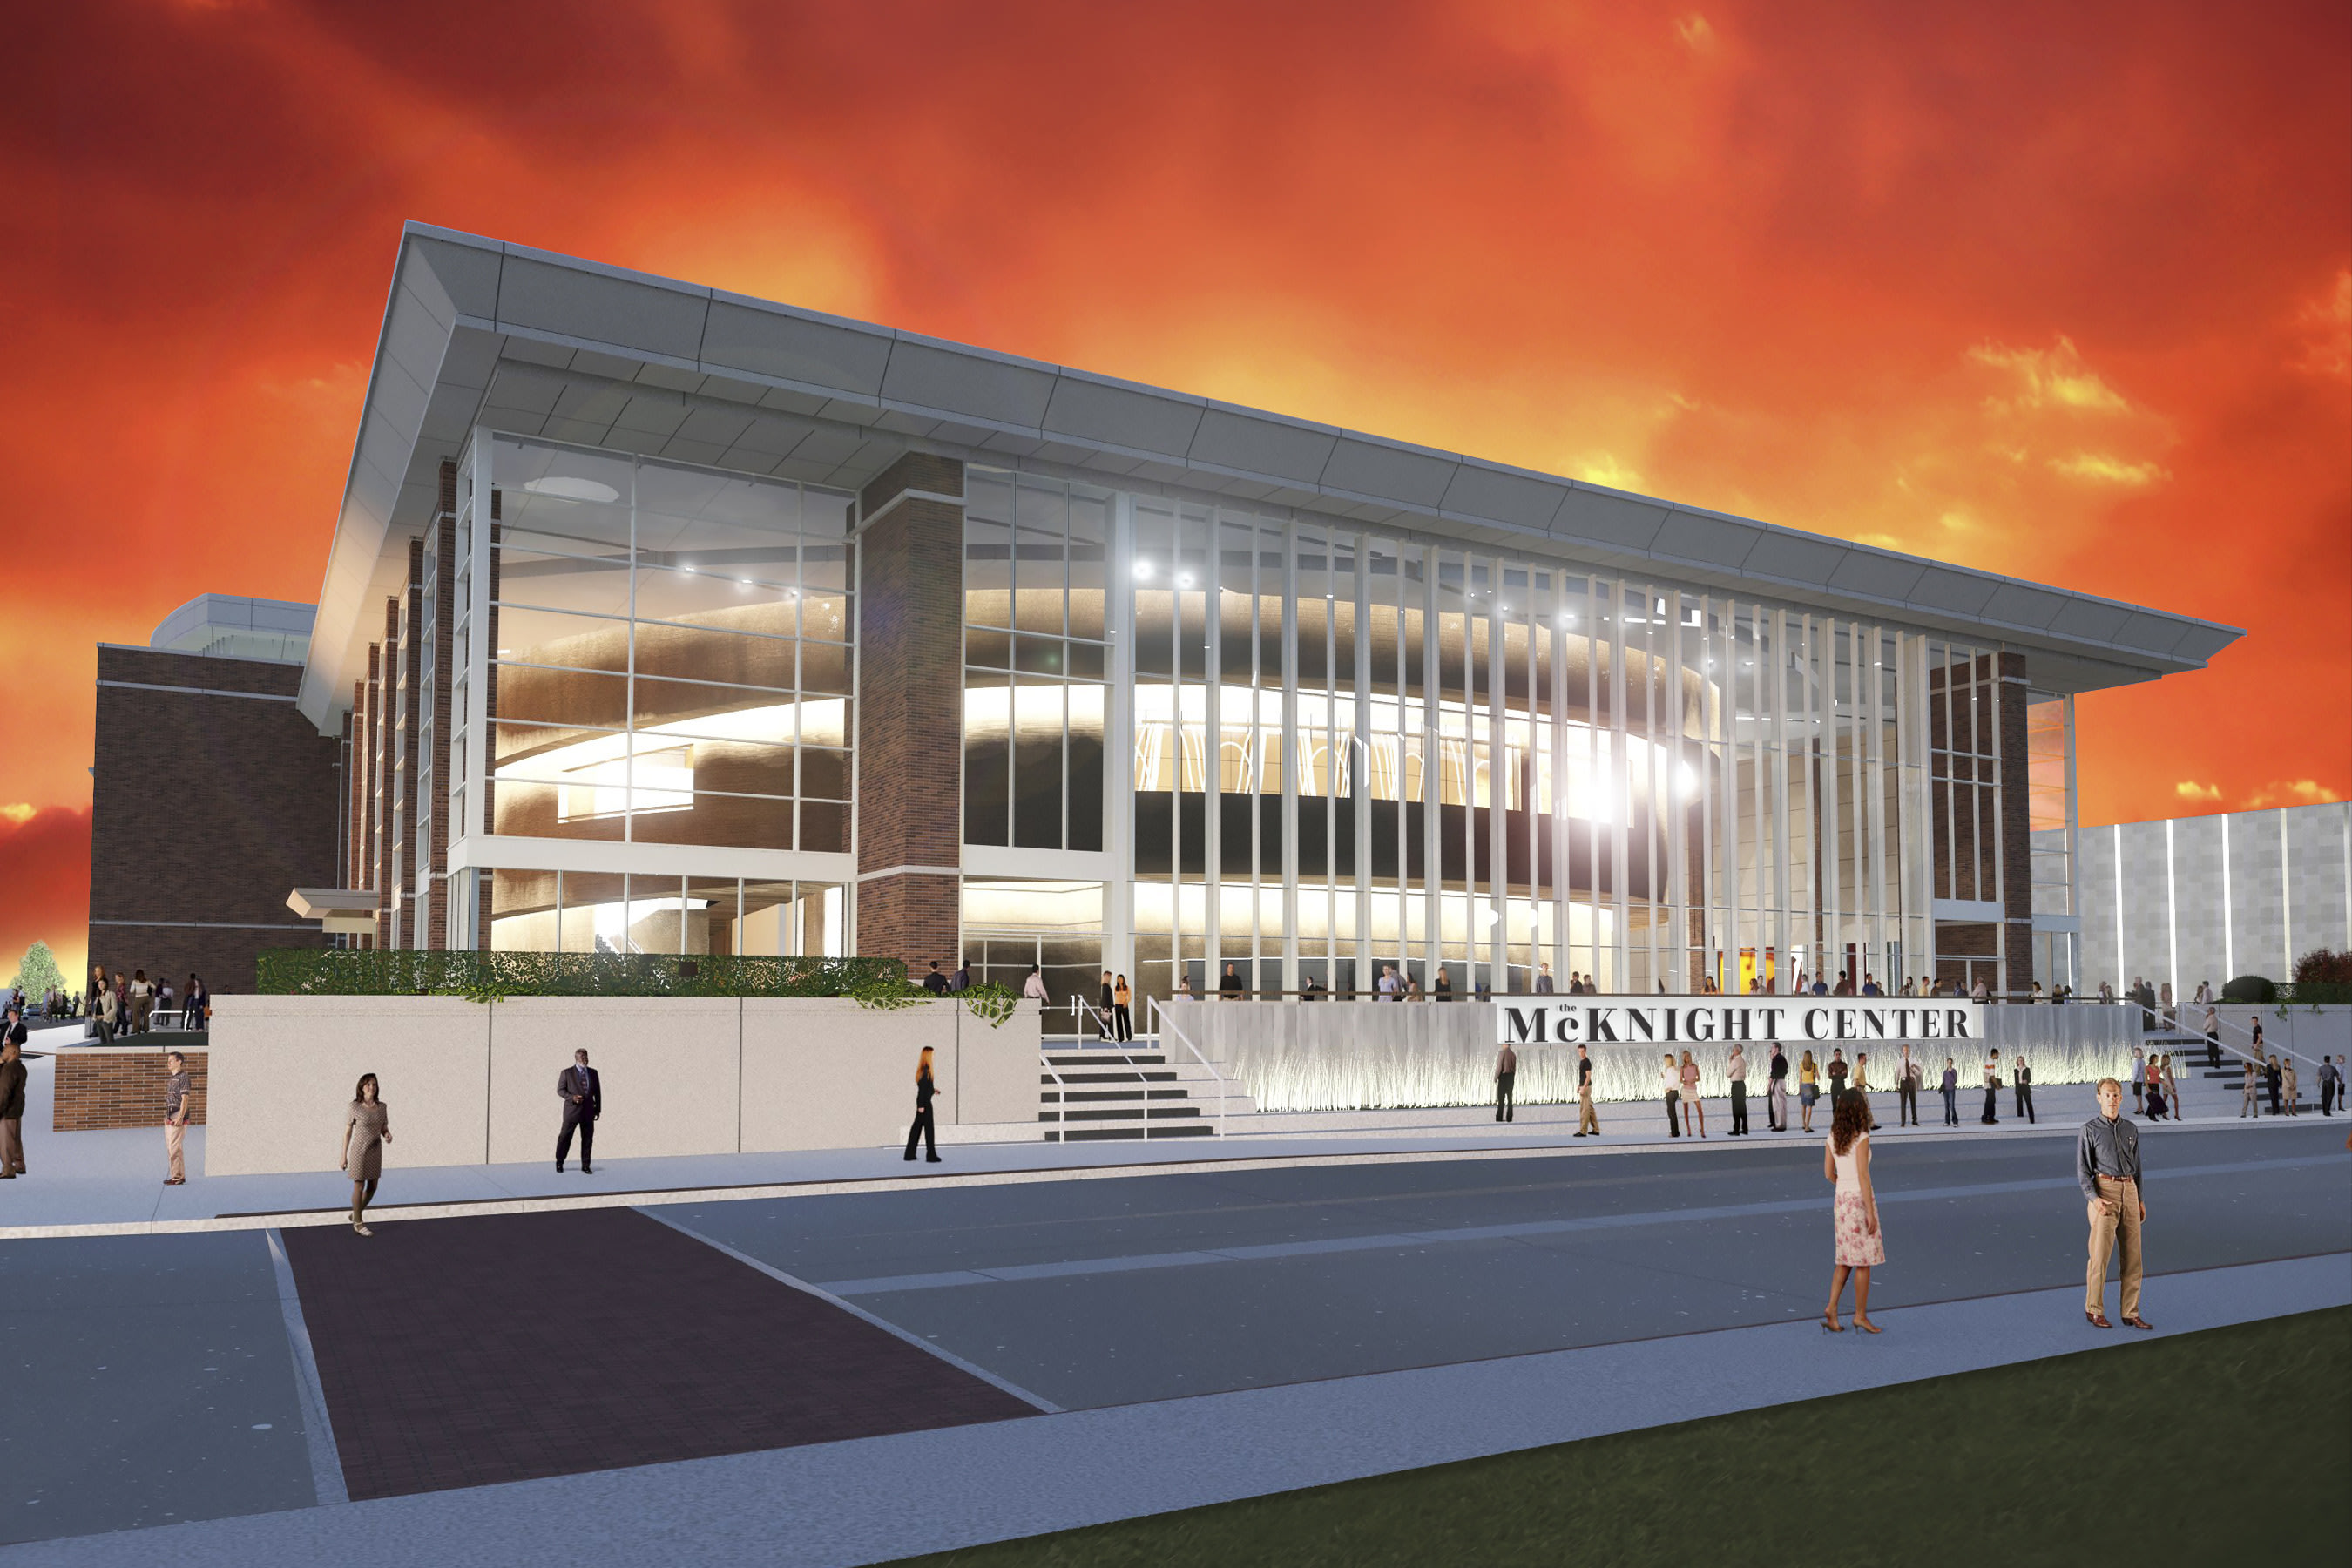 Architectural rendering of the front façade of The McKnight Center for the Performing Arts at Oklahoma State University